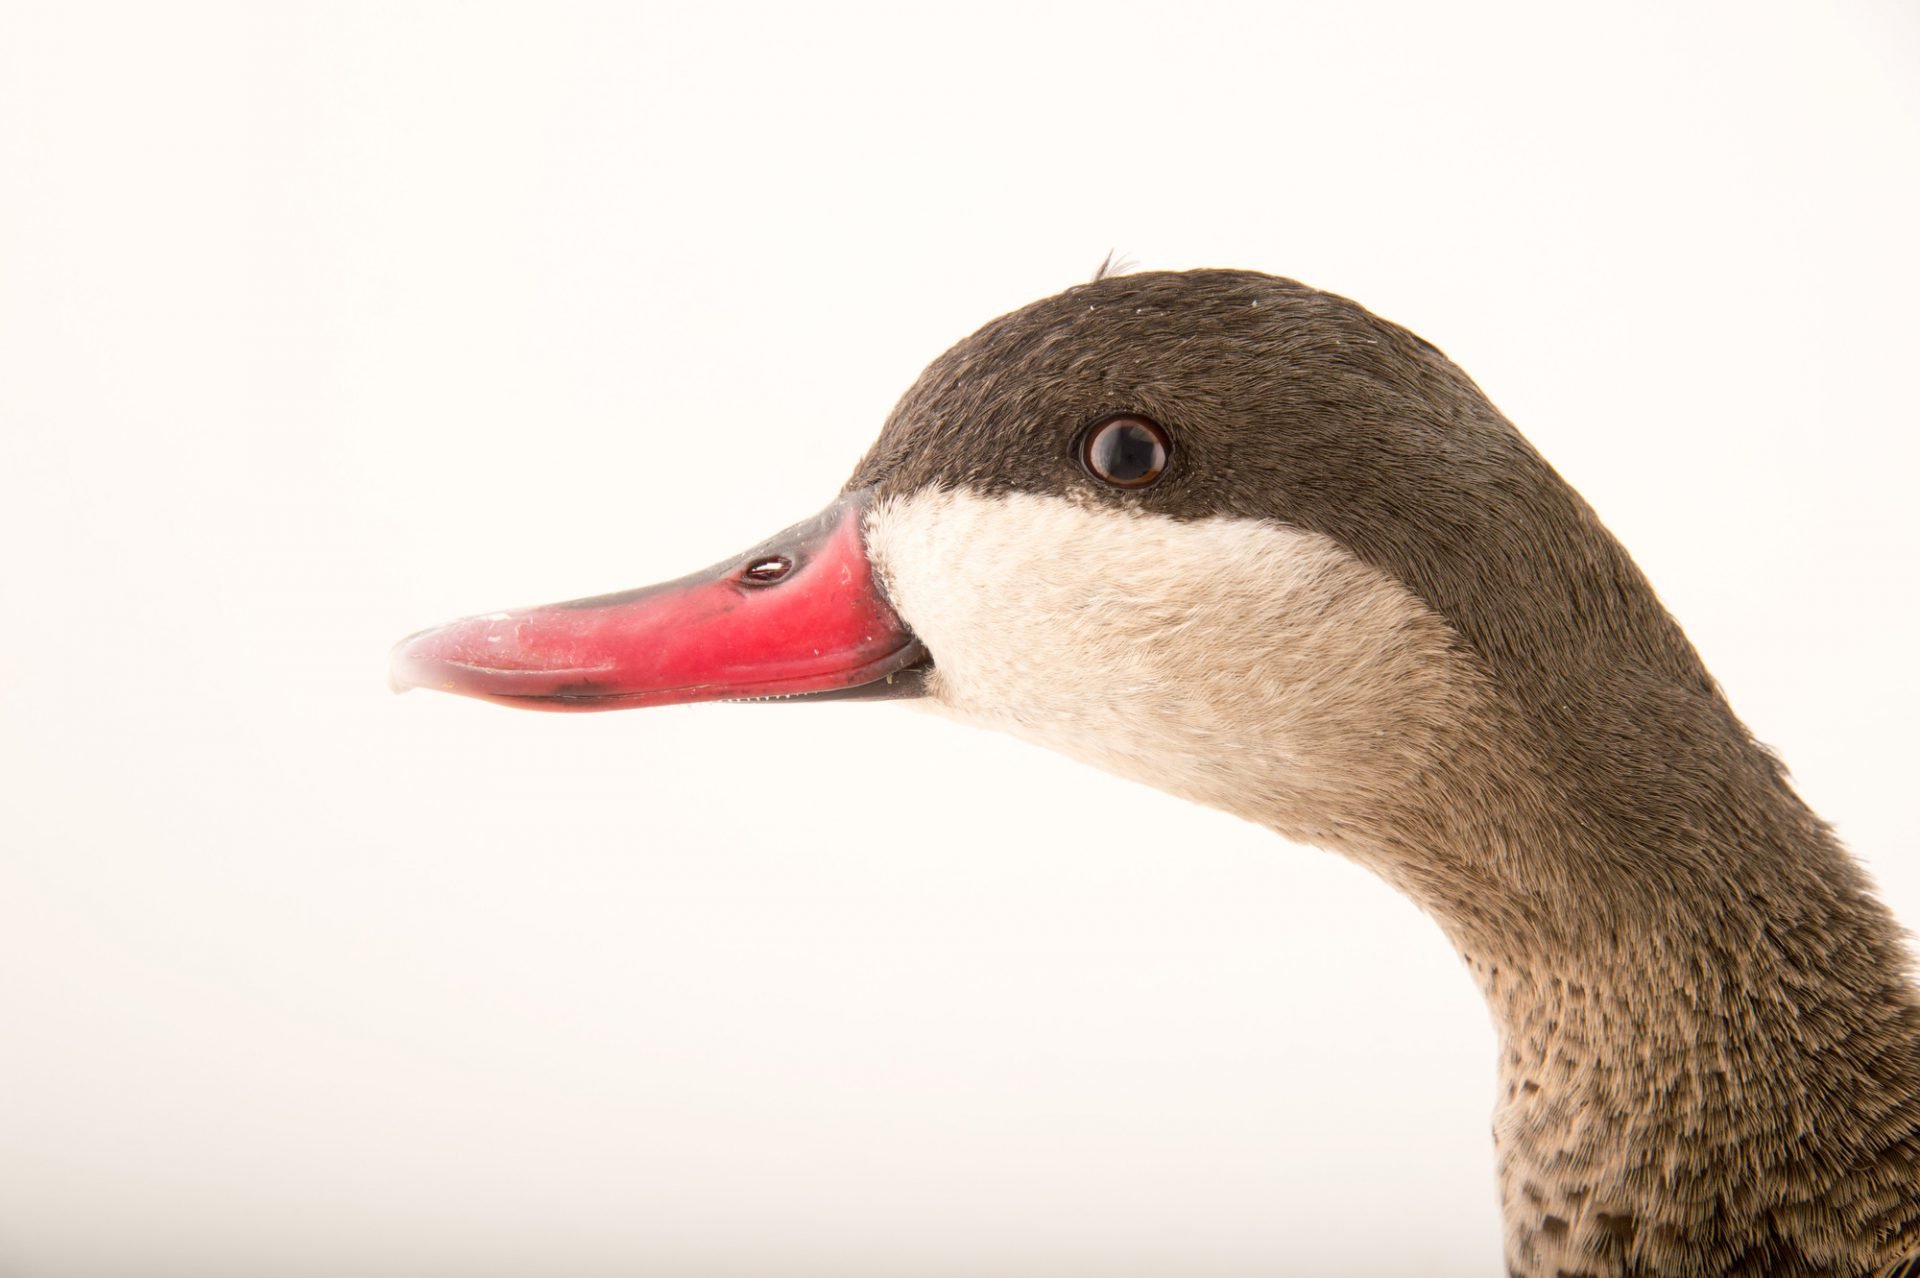 Picture of a red-billed duck (Anas erythrorhyncha) at the Sylvan Heights Bird Park.